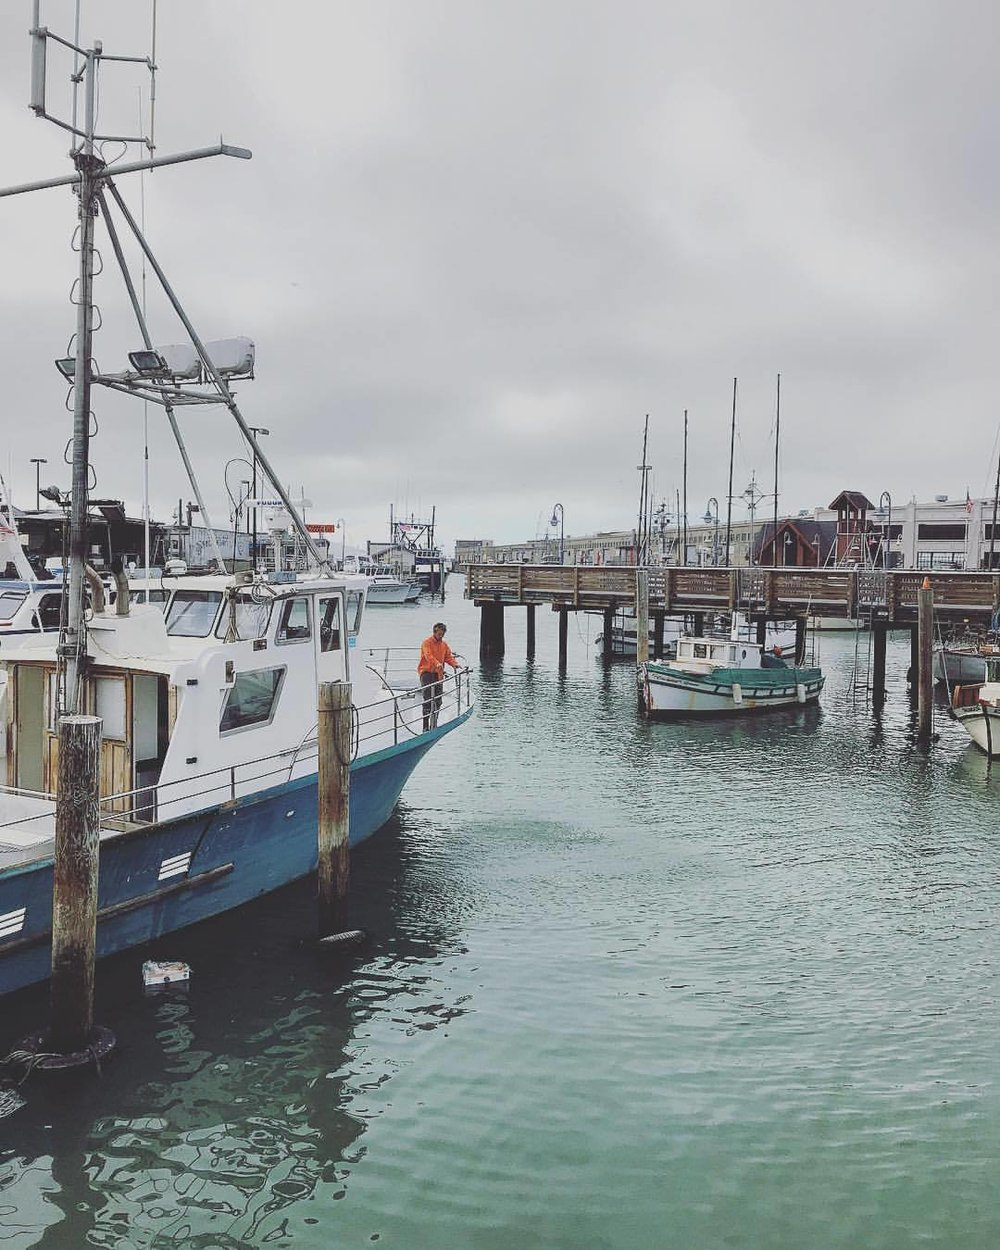 A chilly gray summer's day on San Francisco Bay.  -  #california #sanfrancisco #thecoldestwinterieversaw (at Fisherman's Wharf)